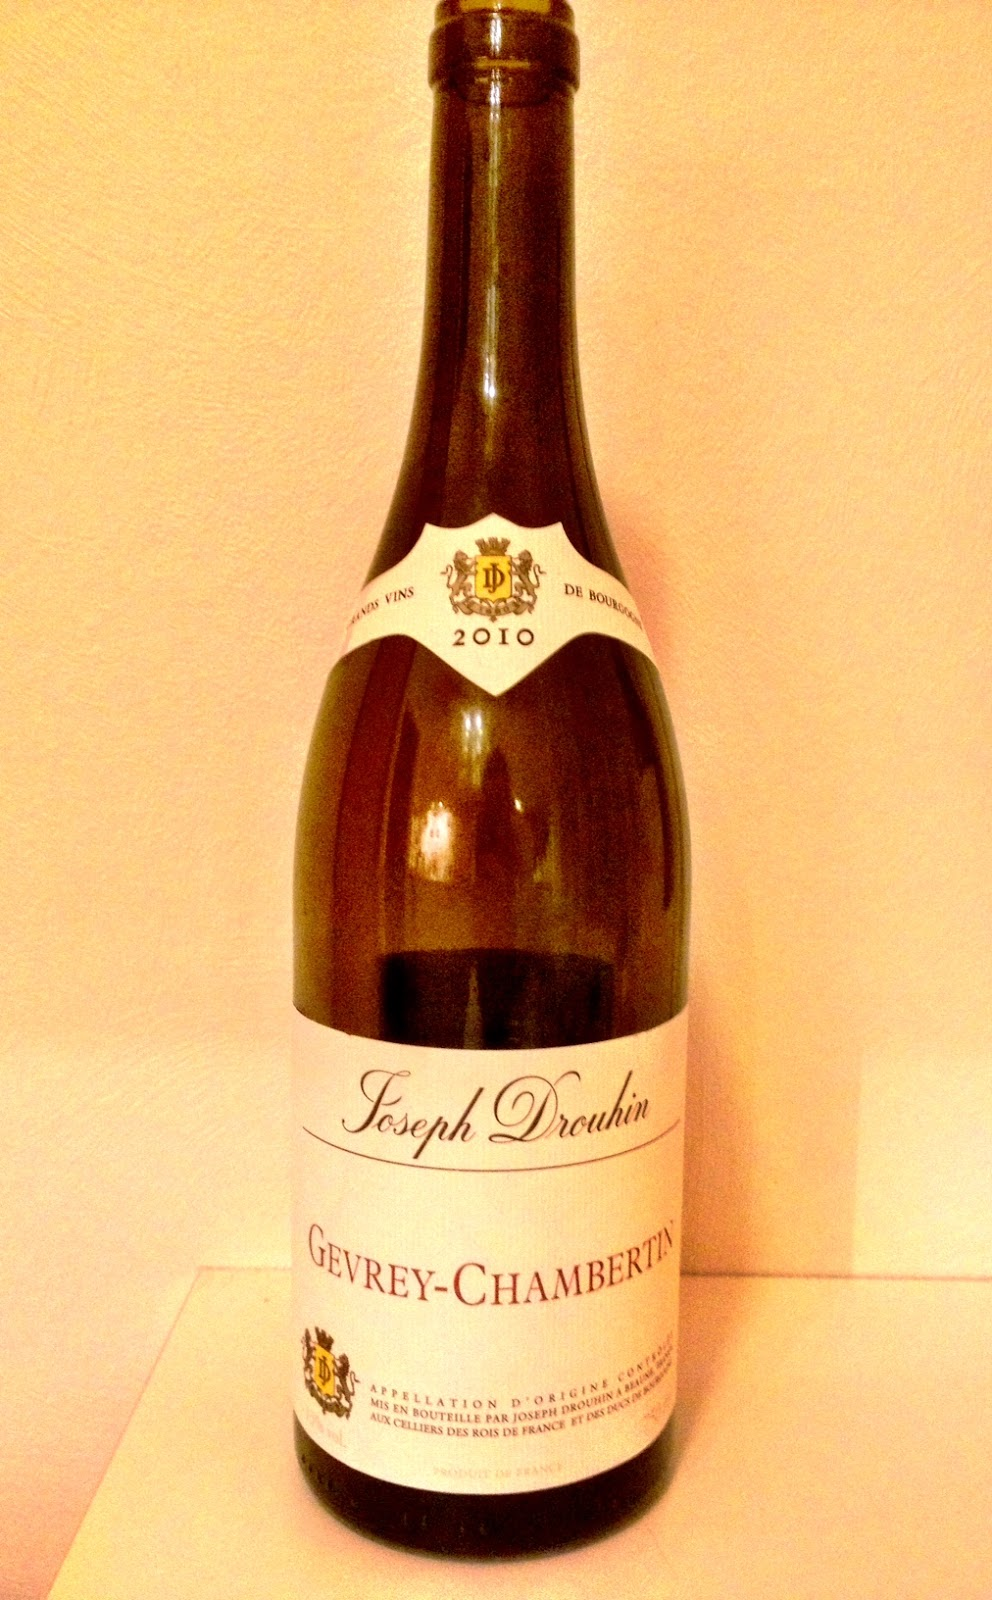 Tasting note on the 2010 Joseph Drouhin Gevrey Chambertin